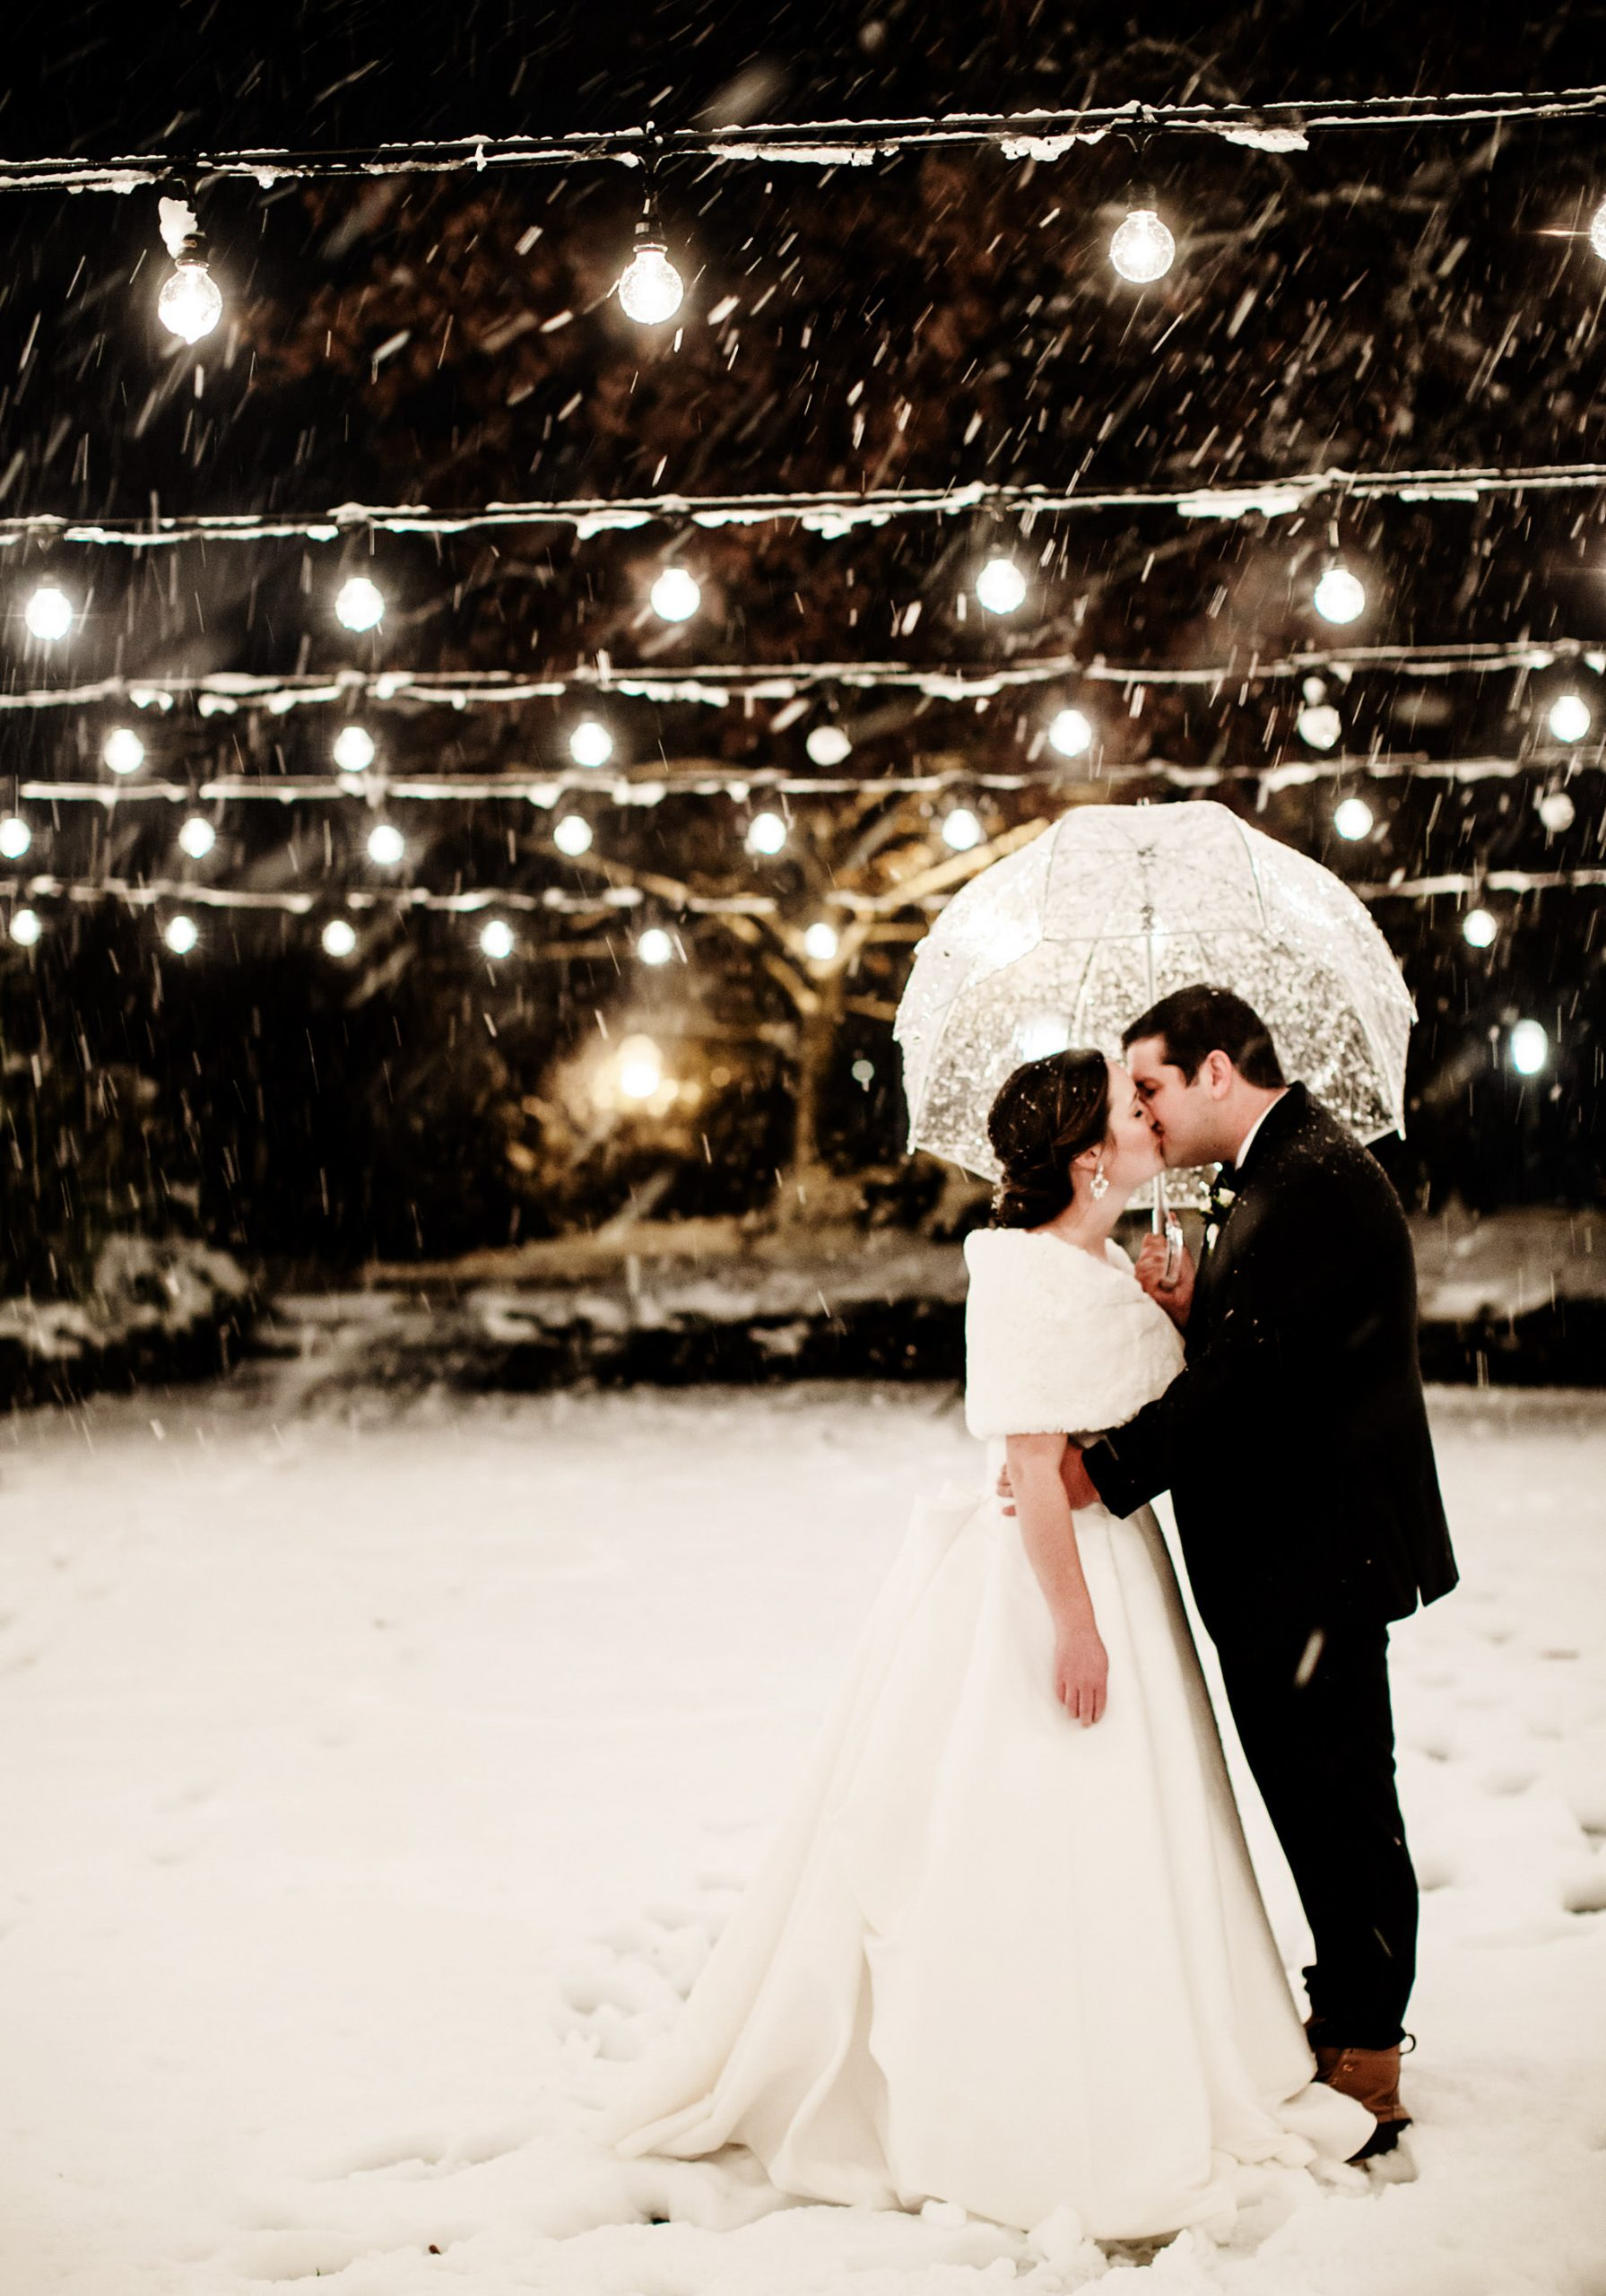 Bedford Village Inn Wedding  I  The bride and groom kiss under the lights in the courtyard in Bedford, NH as the snow falls.